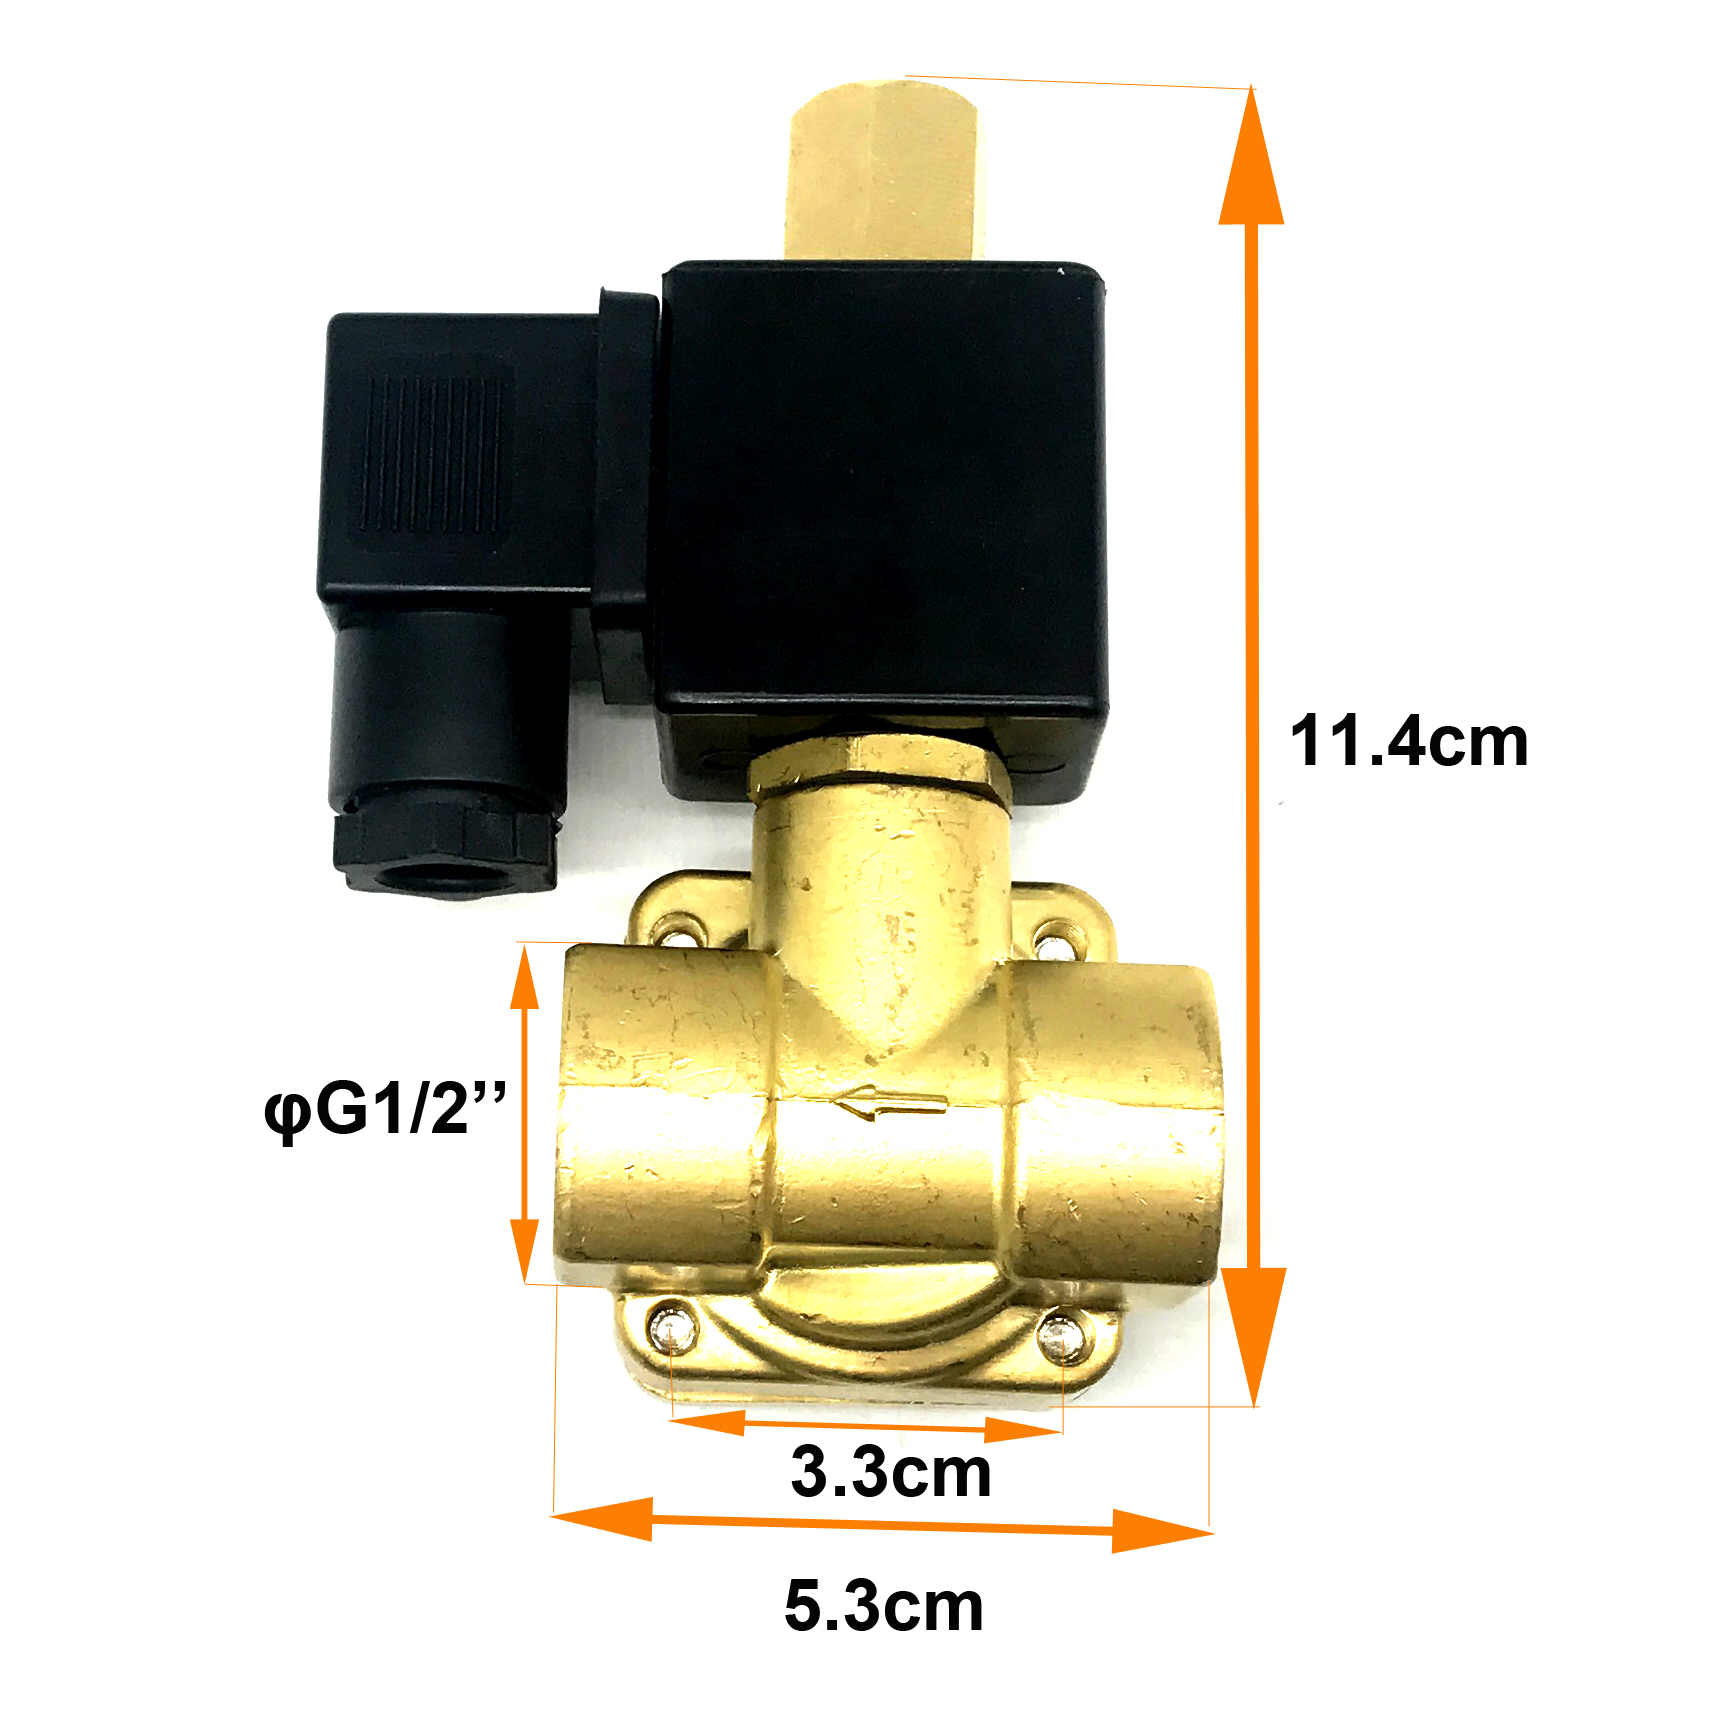 ASCO Type 8210G018, 8210G014 Replacement 0955305 Electric Solenoid Valve